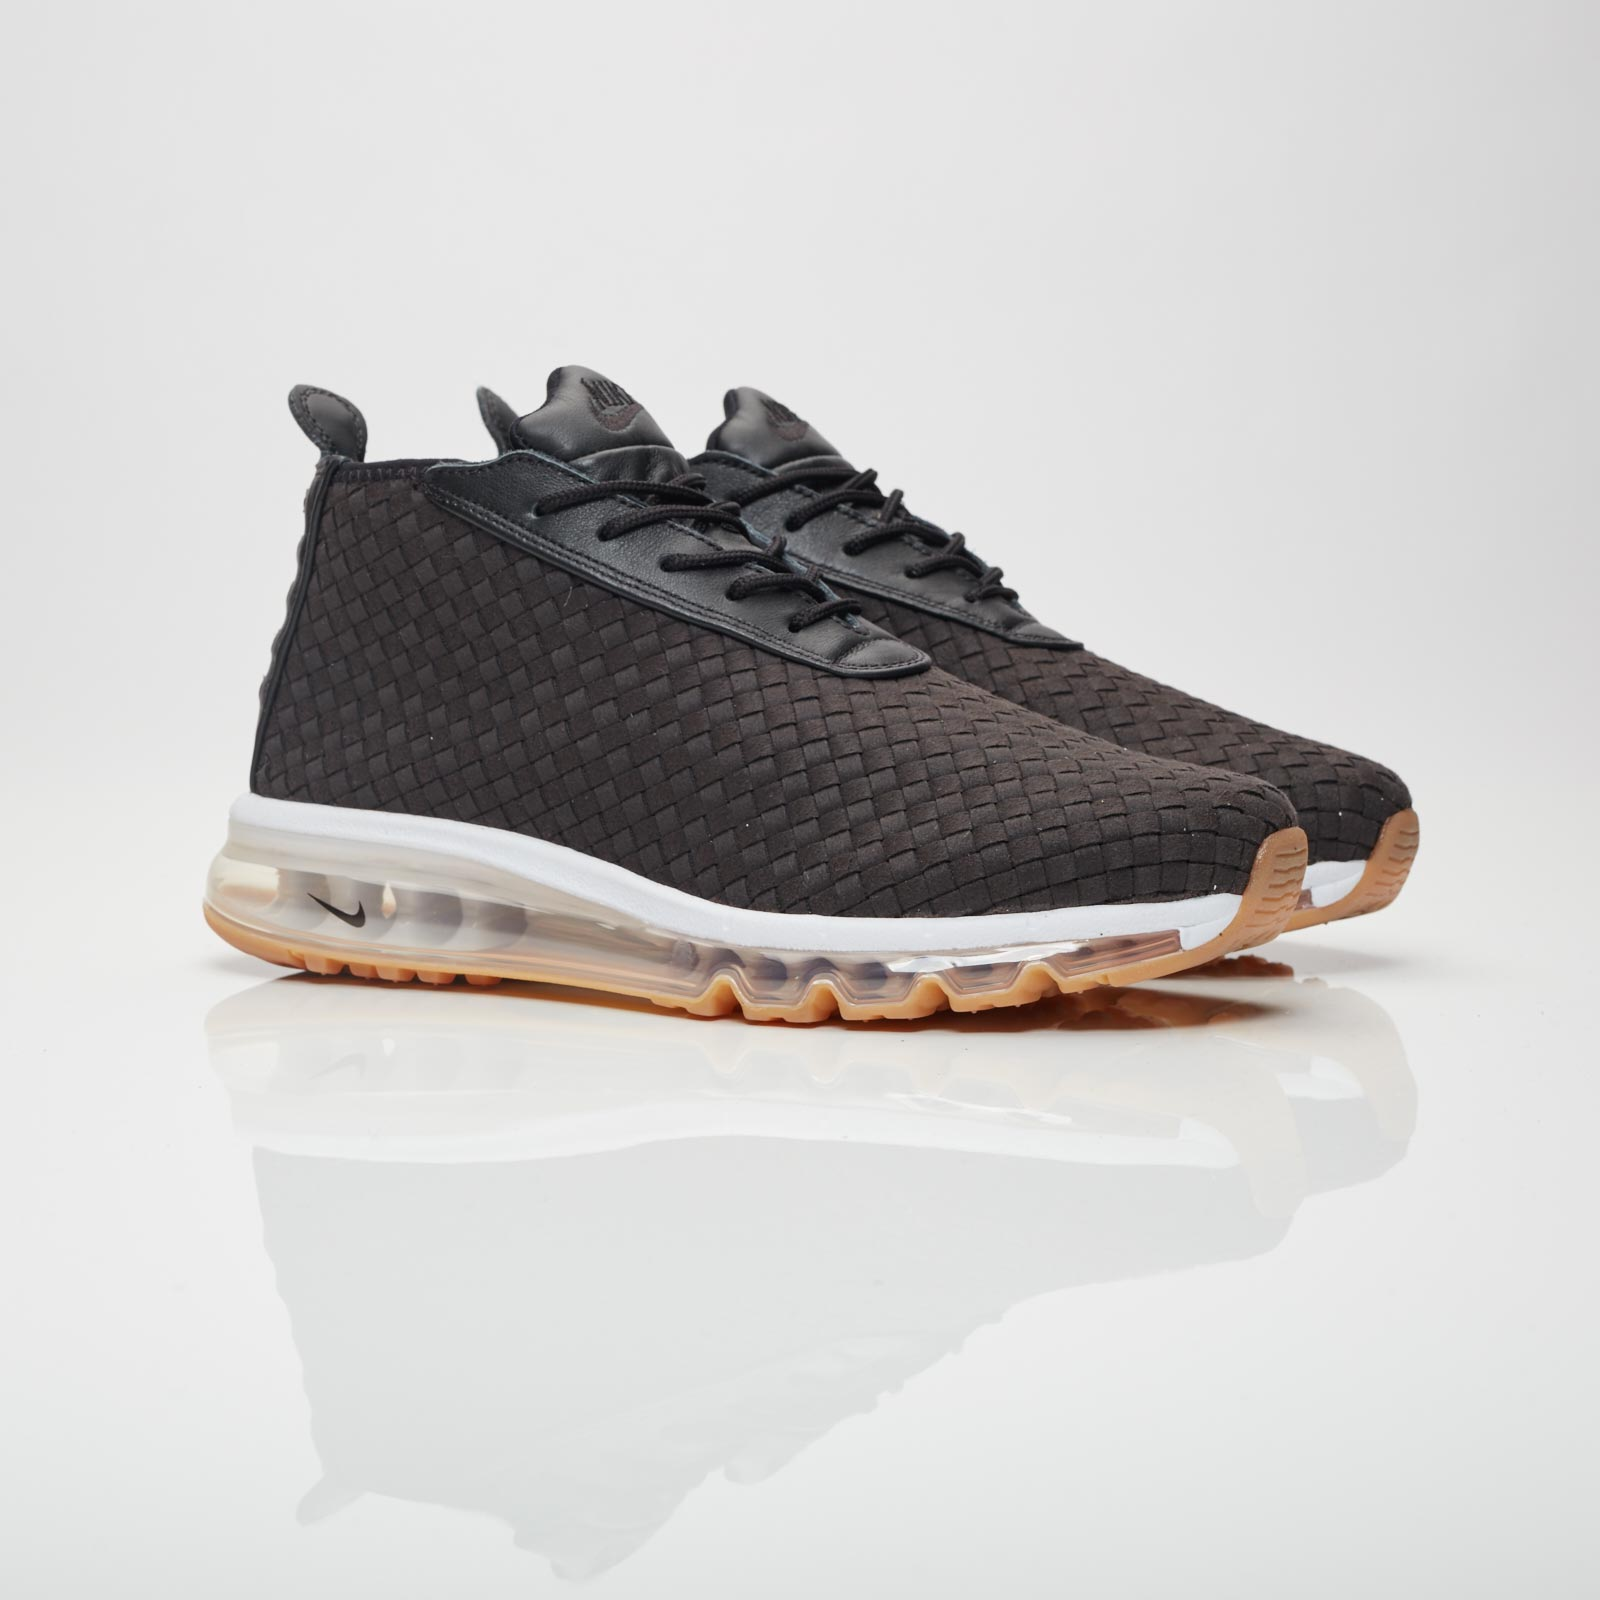 Nike Air Max Woven Boot - 921854-003 - Sneakersnstuff  274bae33e